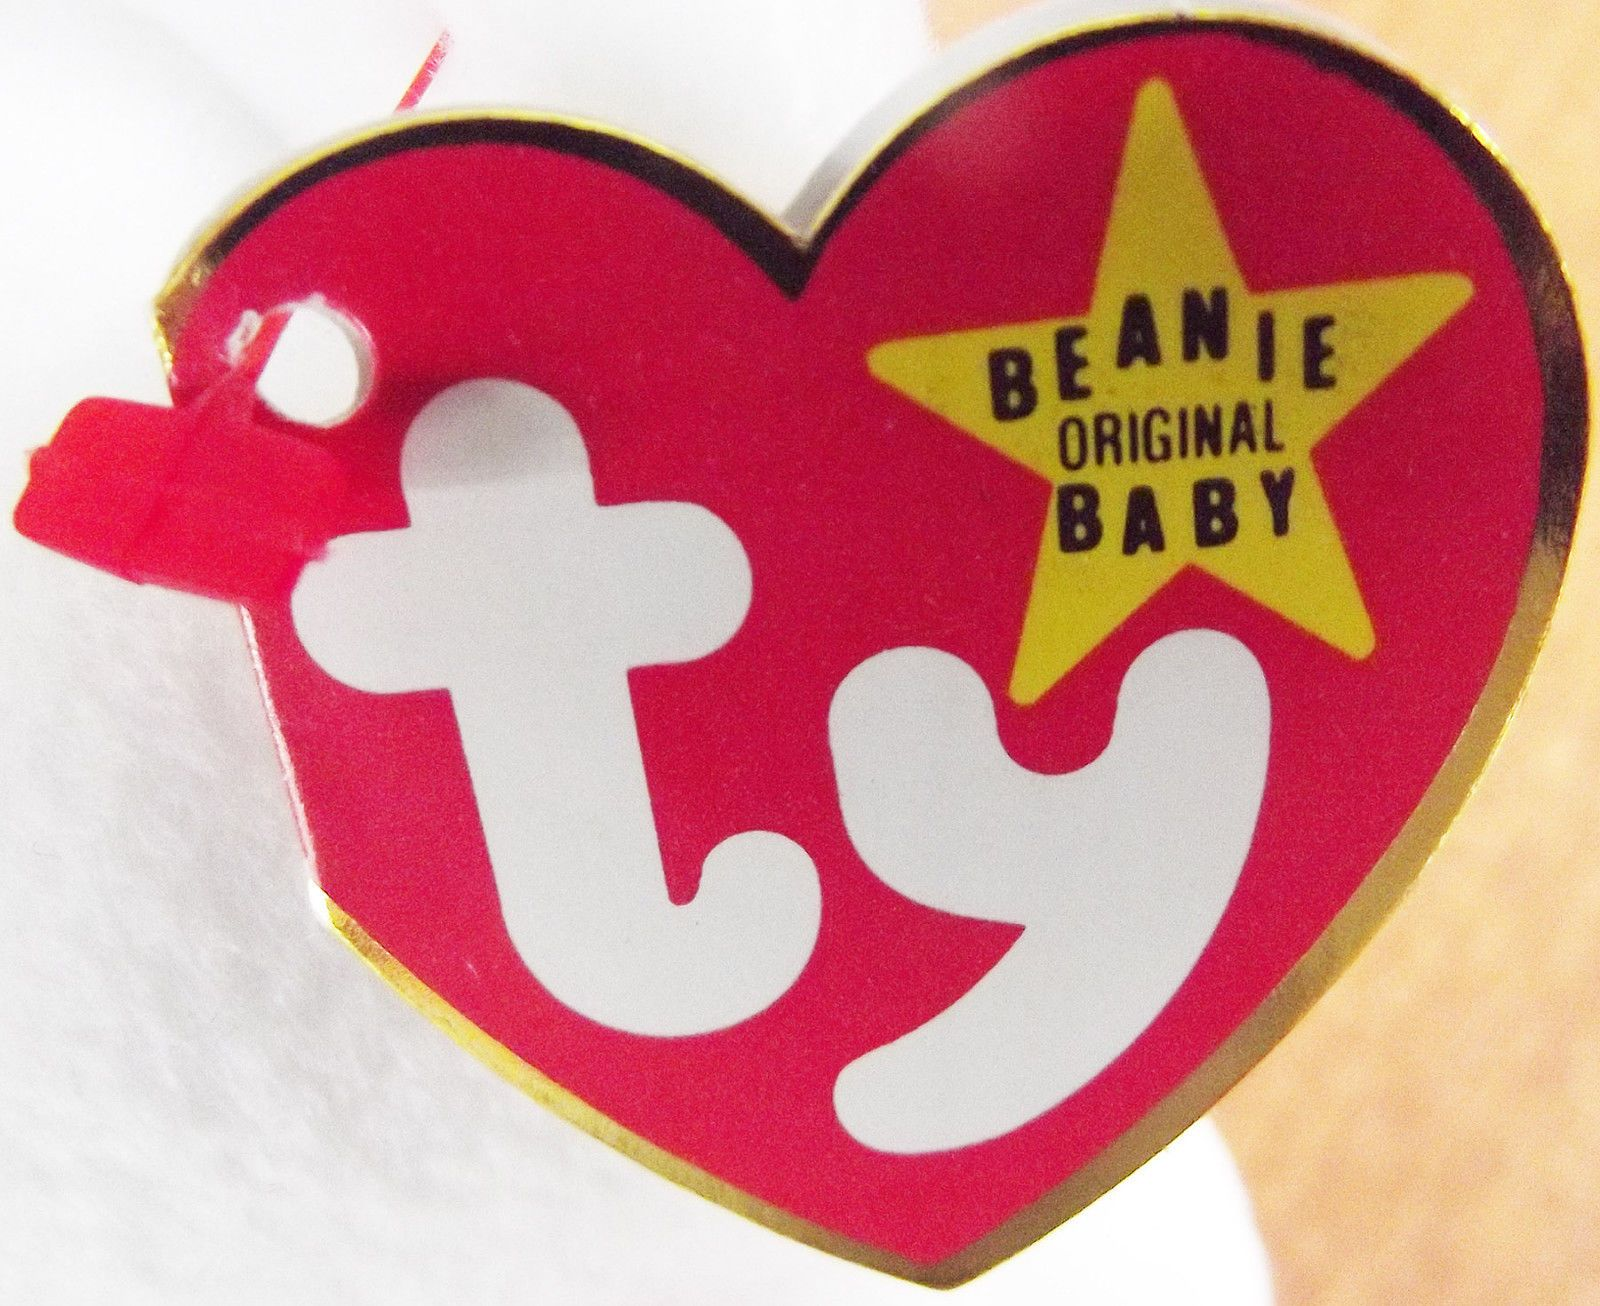 This is the same Beanie Babies price guide found on this.